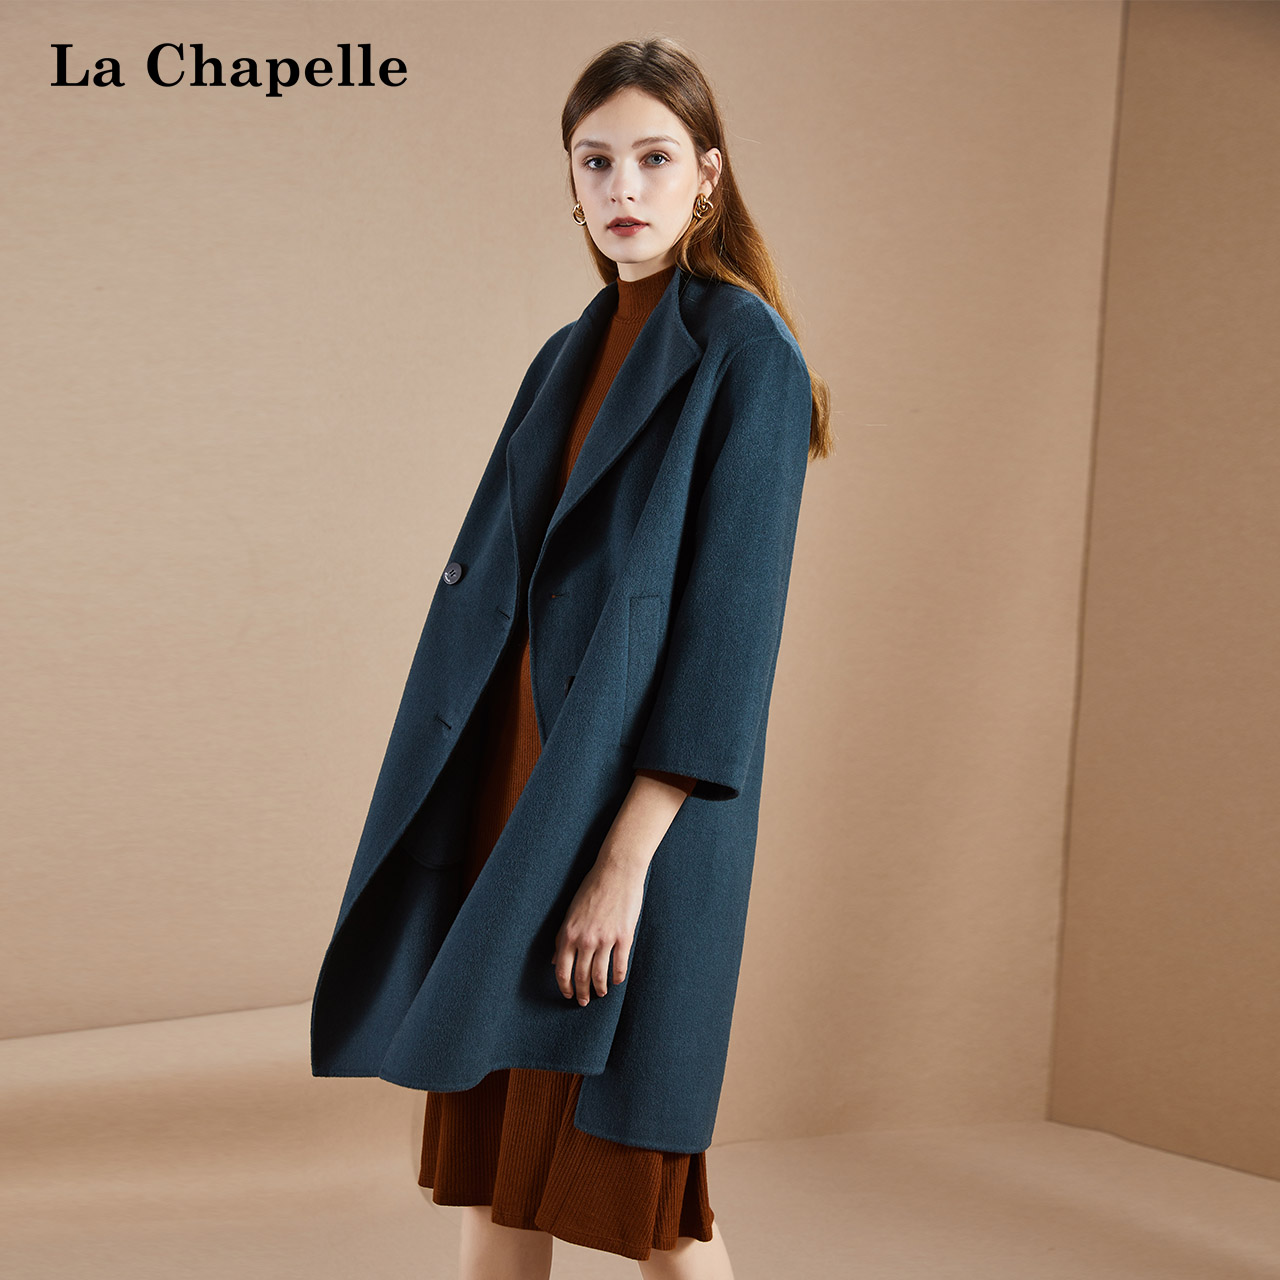 Lashabel Korean double breasted woolen coat women's winter loose popular wool fashion coat women's medium length